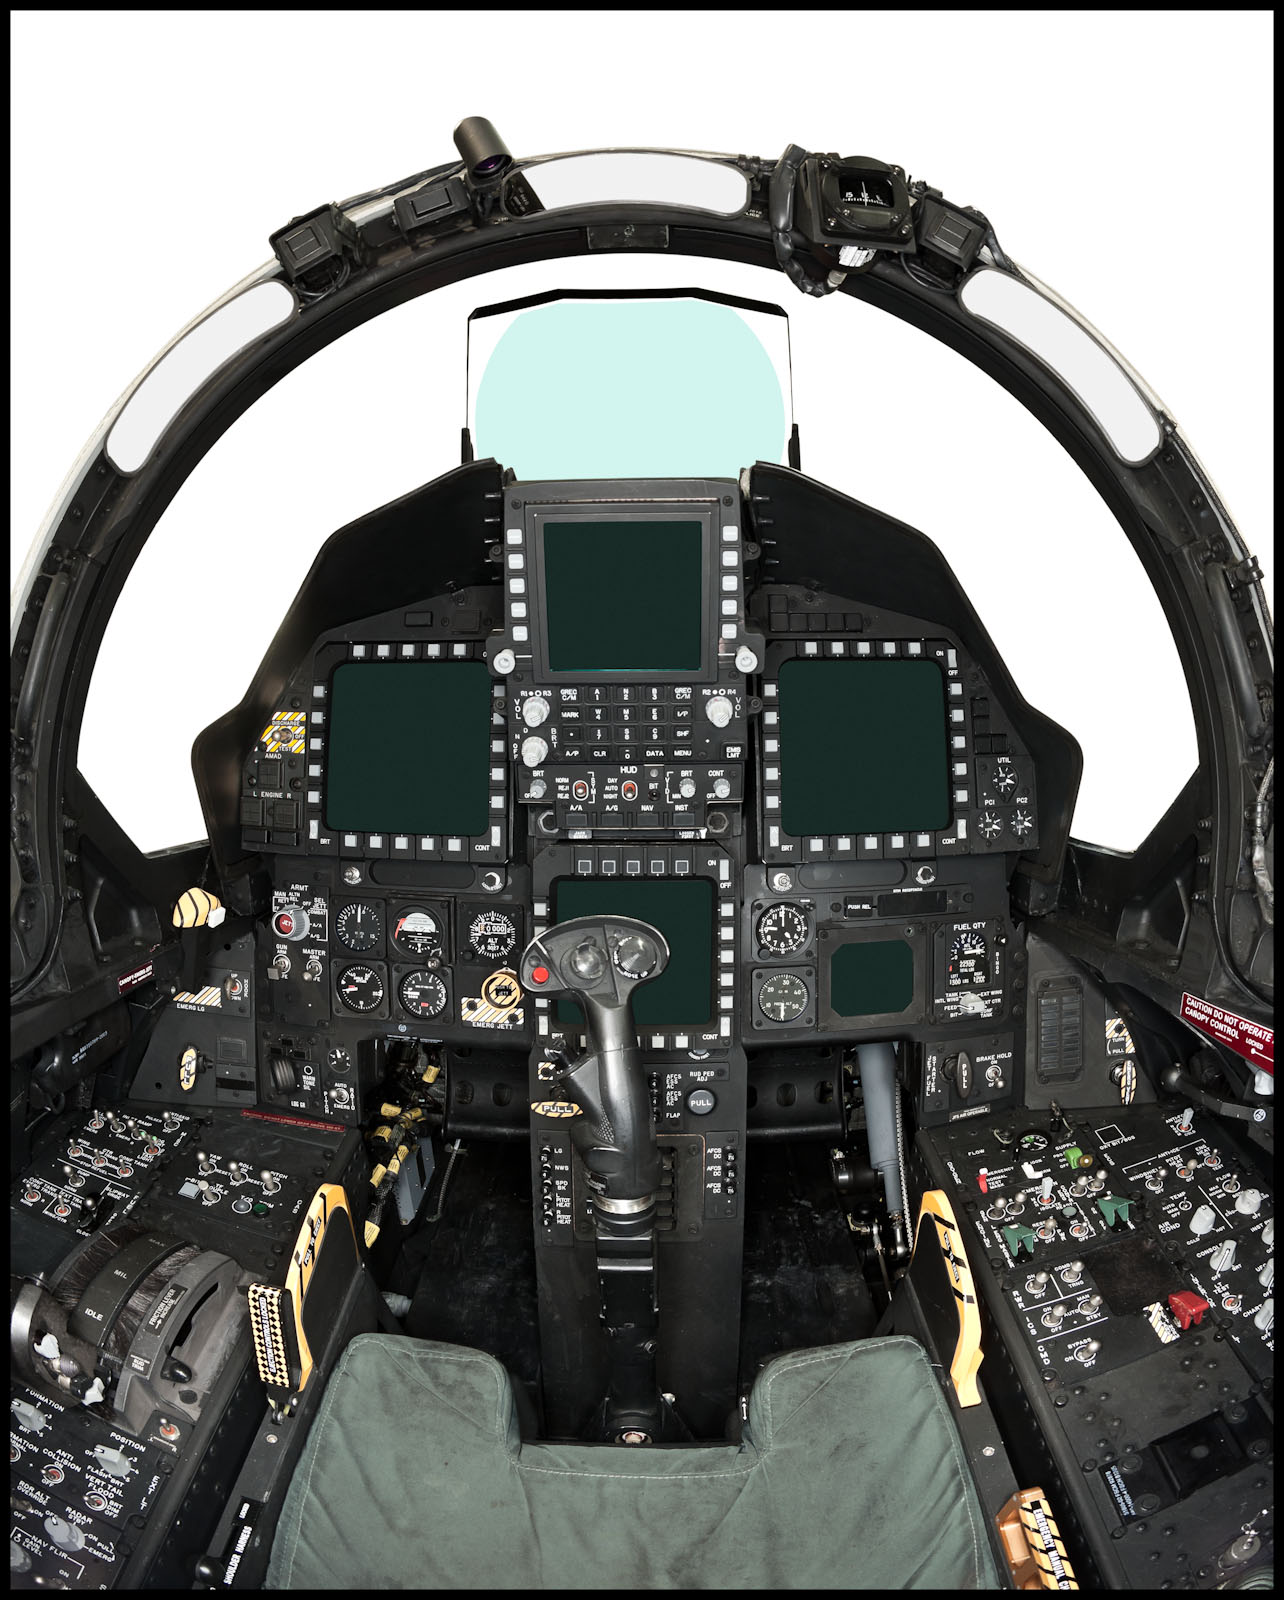 F-15 Eagle Cockpit - St. Louis, MO - Fortune Magazine